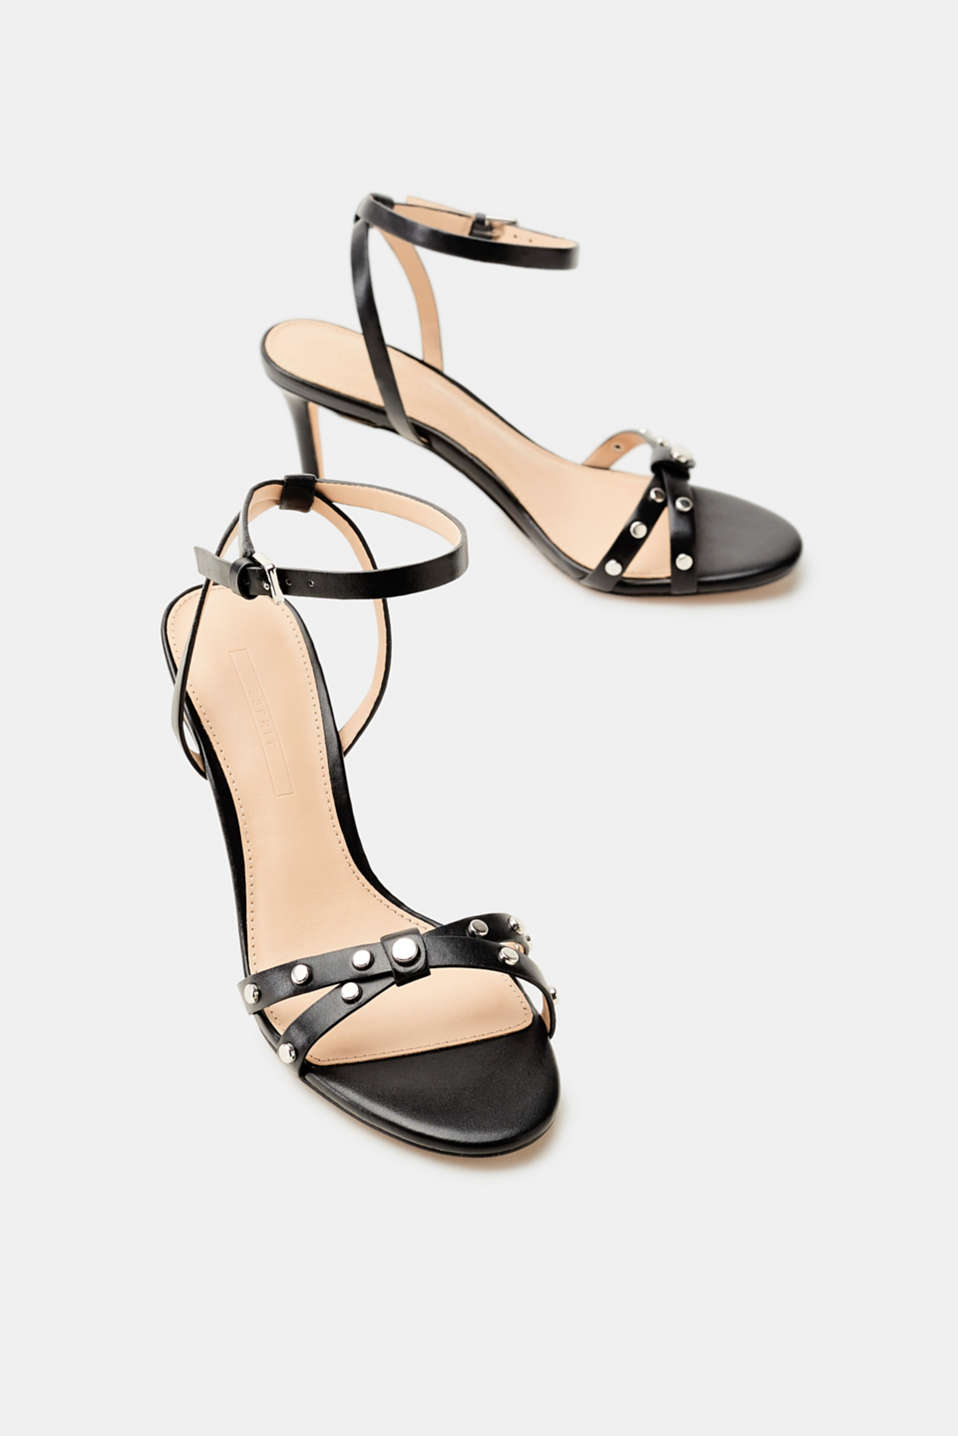 On-trend sandals with stud embellishments